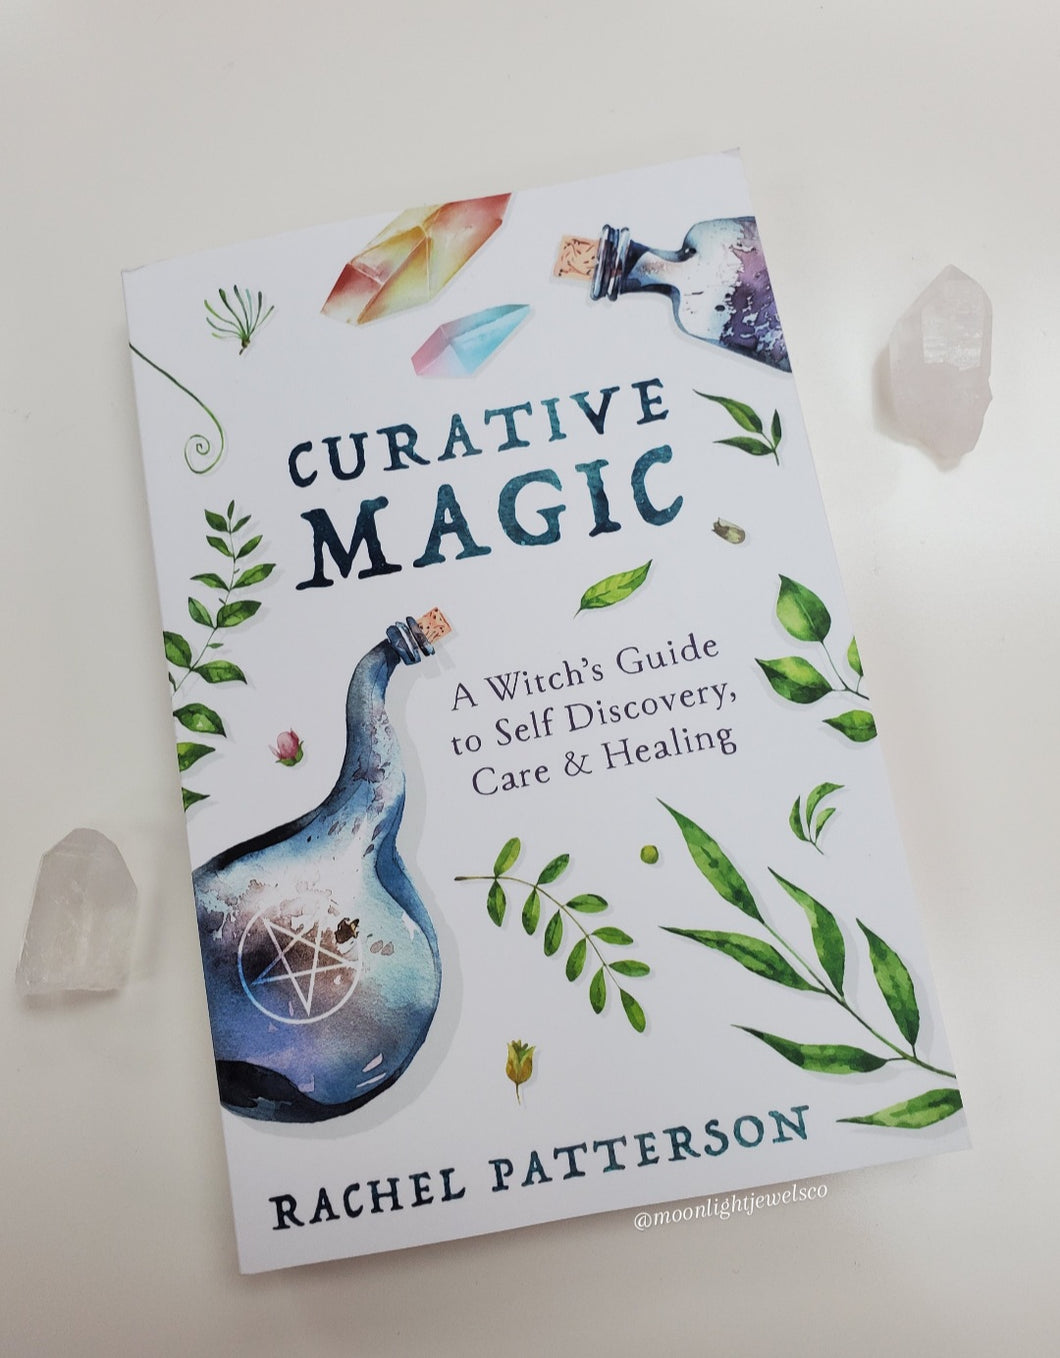 Curative Magic - A Witch's Guide to Self Discovery, Care & Healing